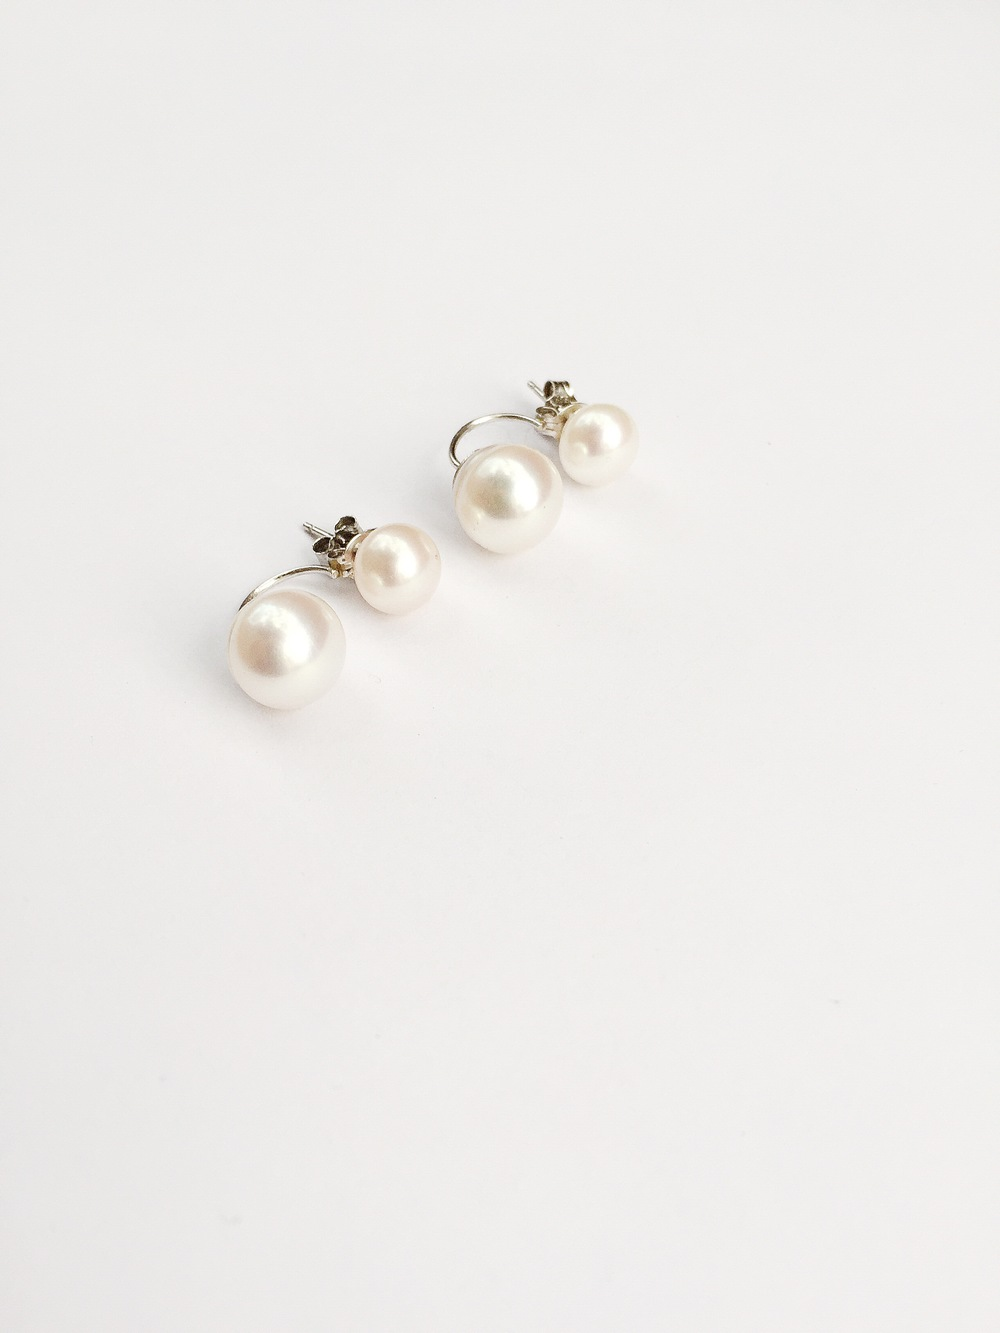 sneakers and pearls, jewellery, jewelry, double fresh water pearl earrings ,trending now.JPG